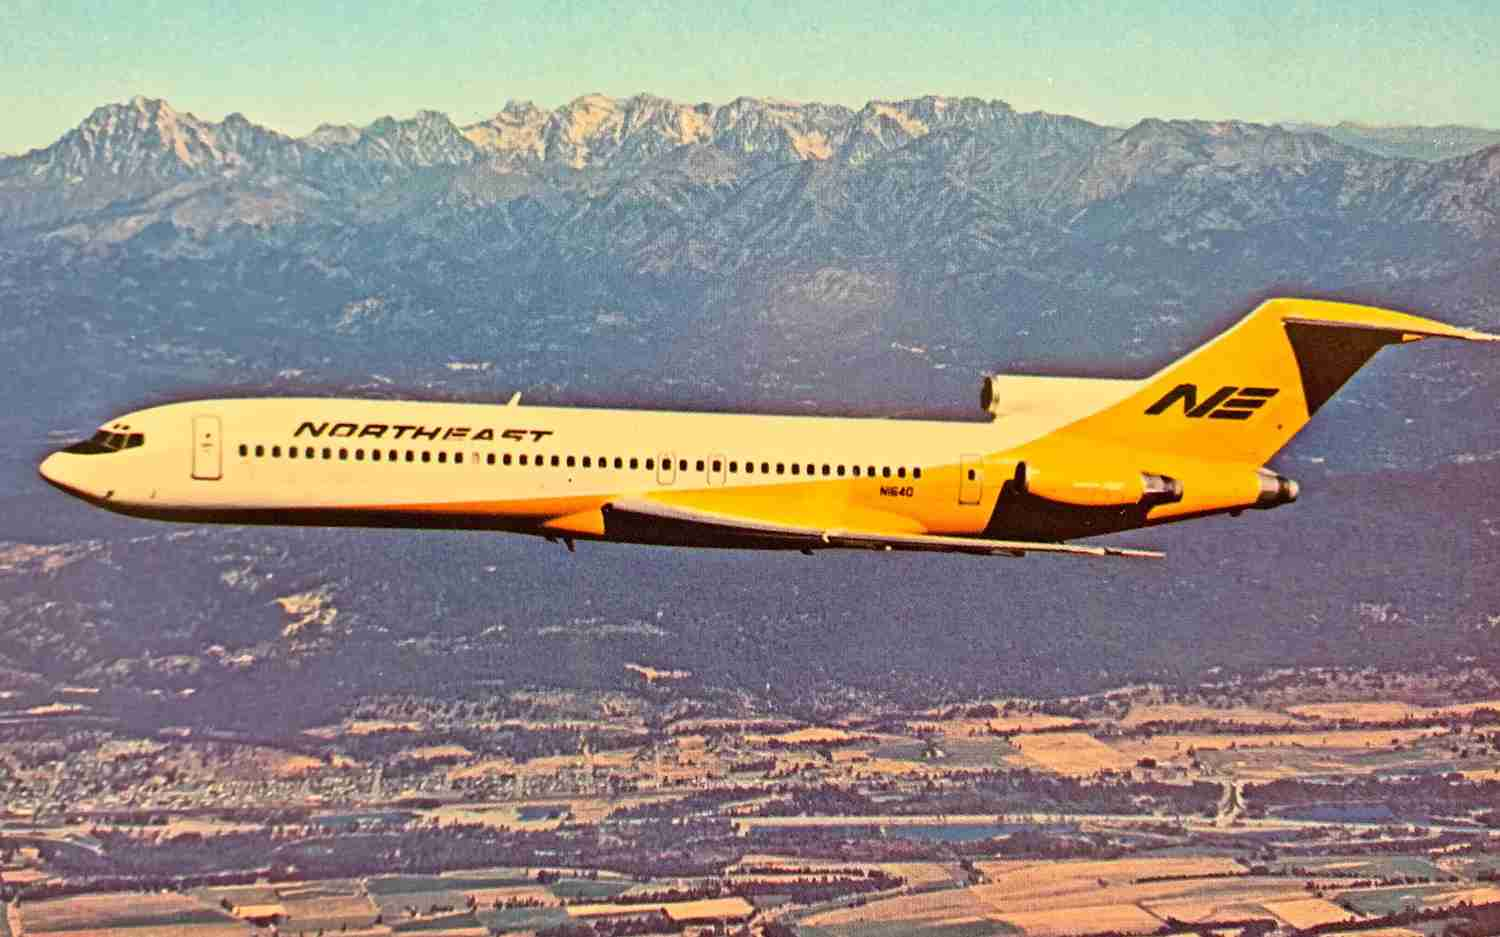 Northeast was the launch customer of the Boeing 727-200.